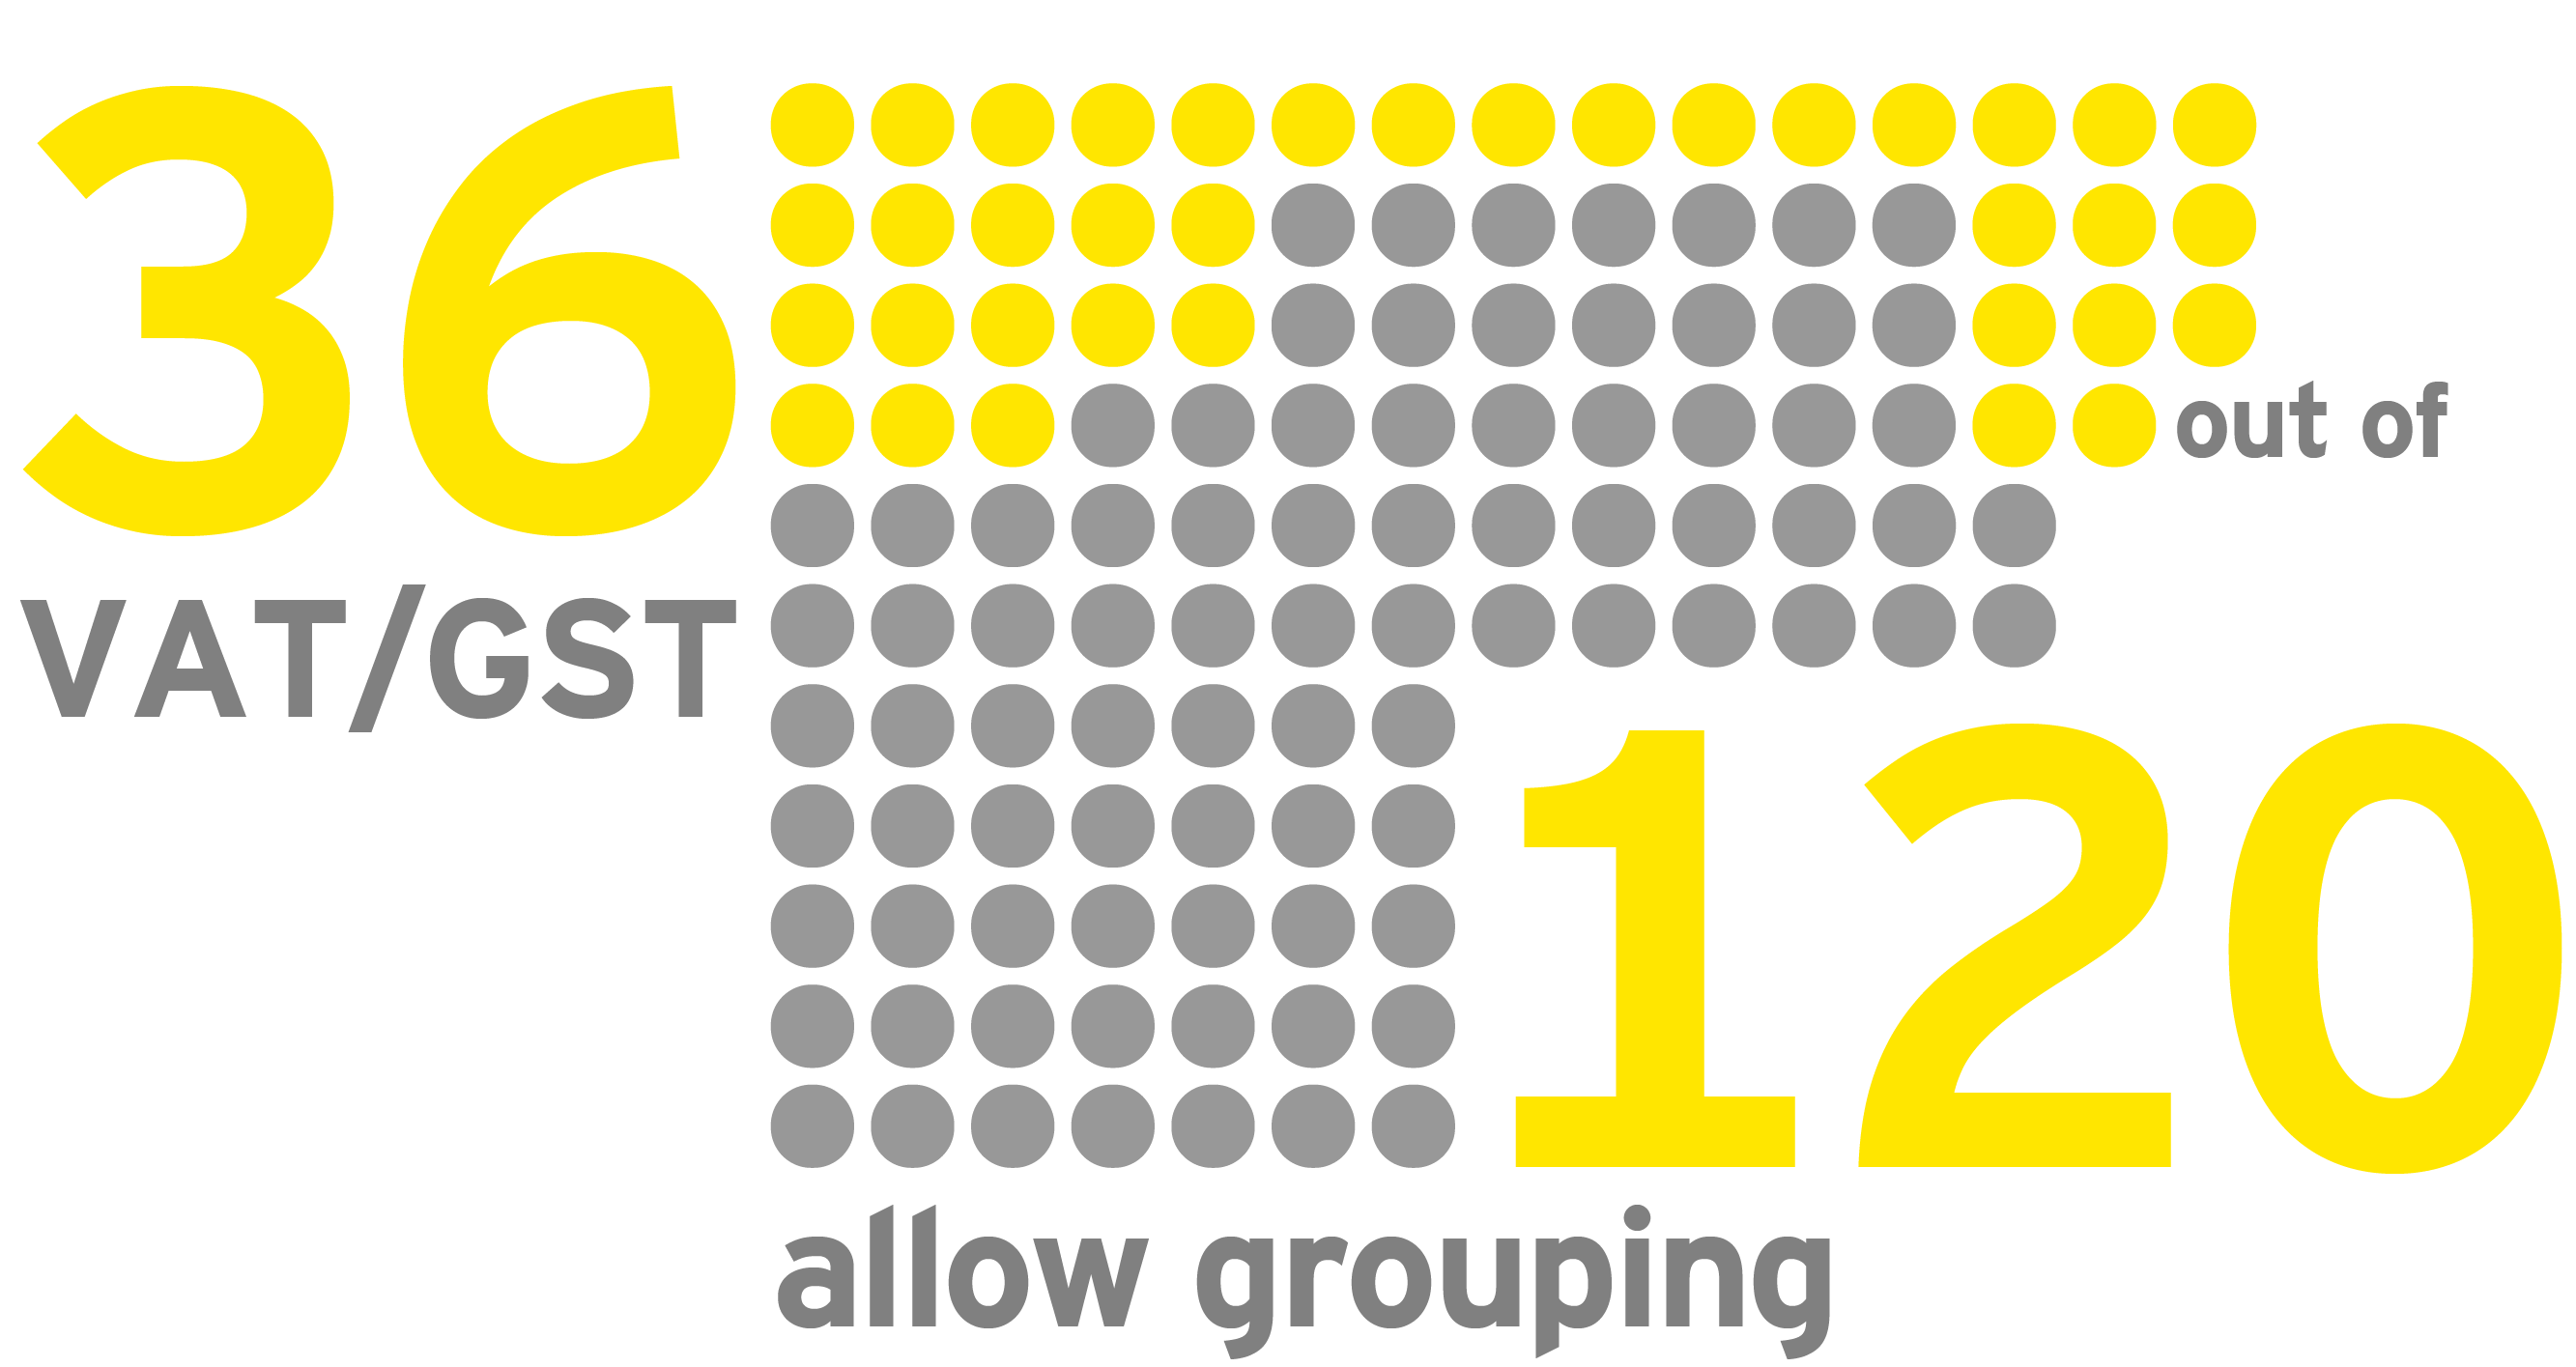 EY - VAT/GST grouping